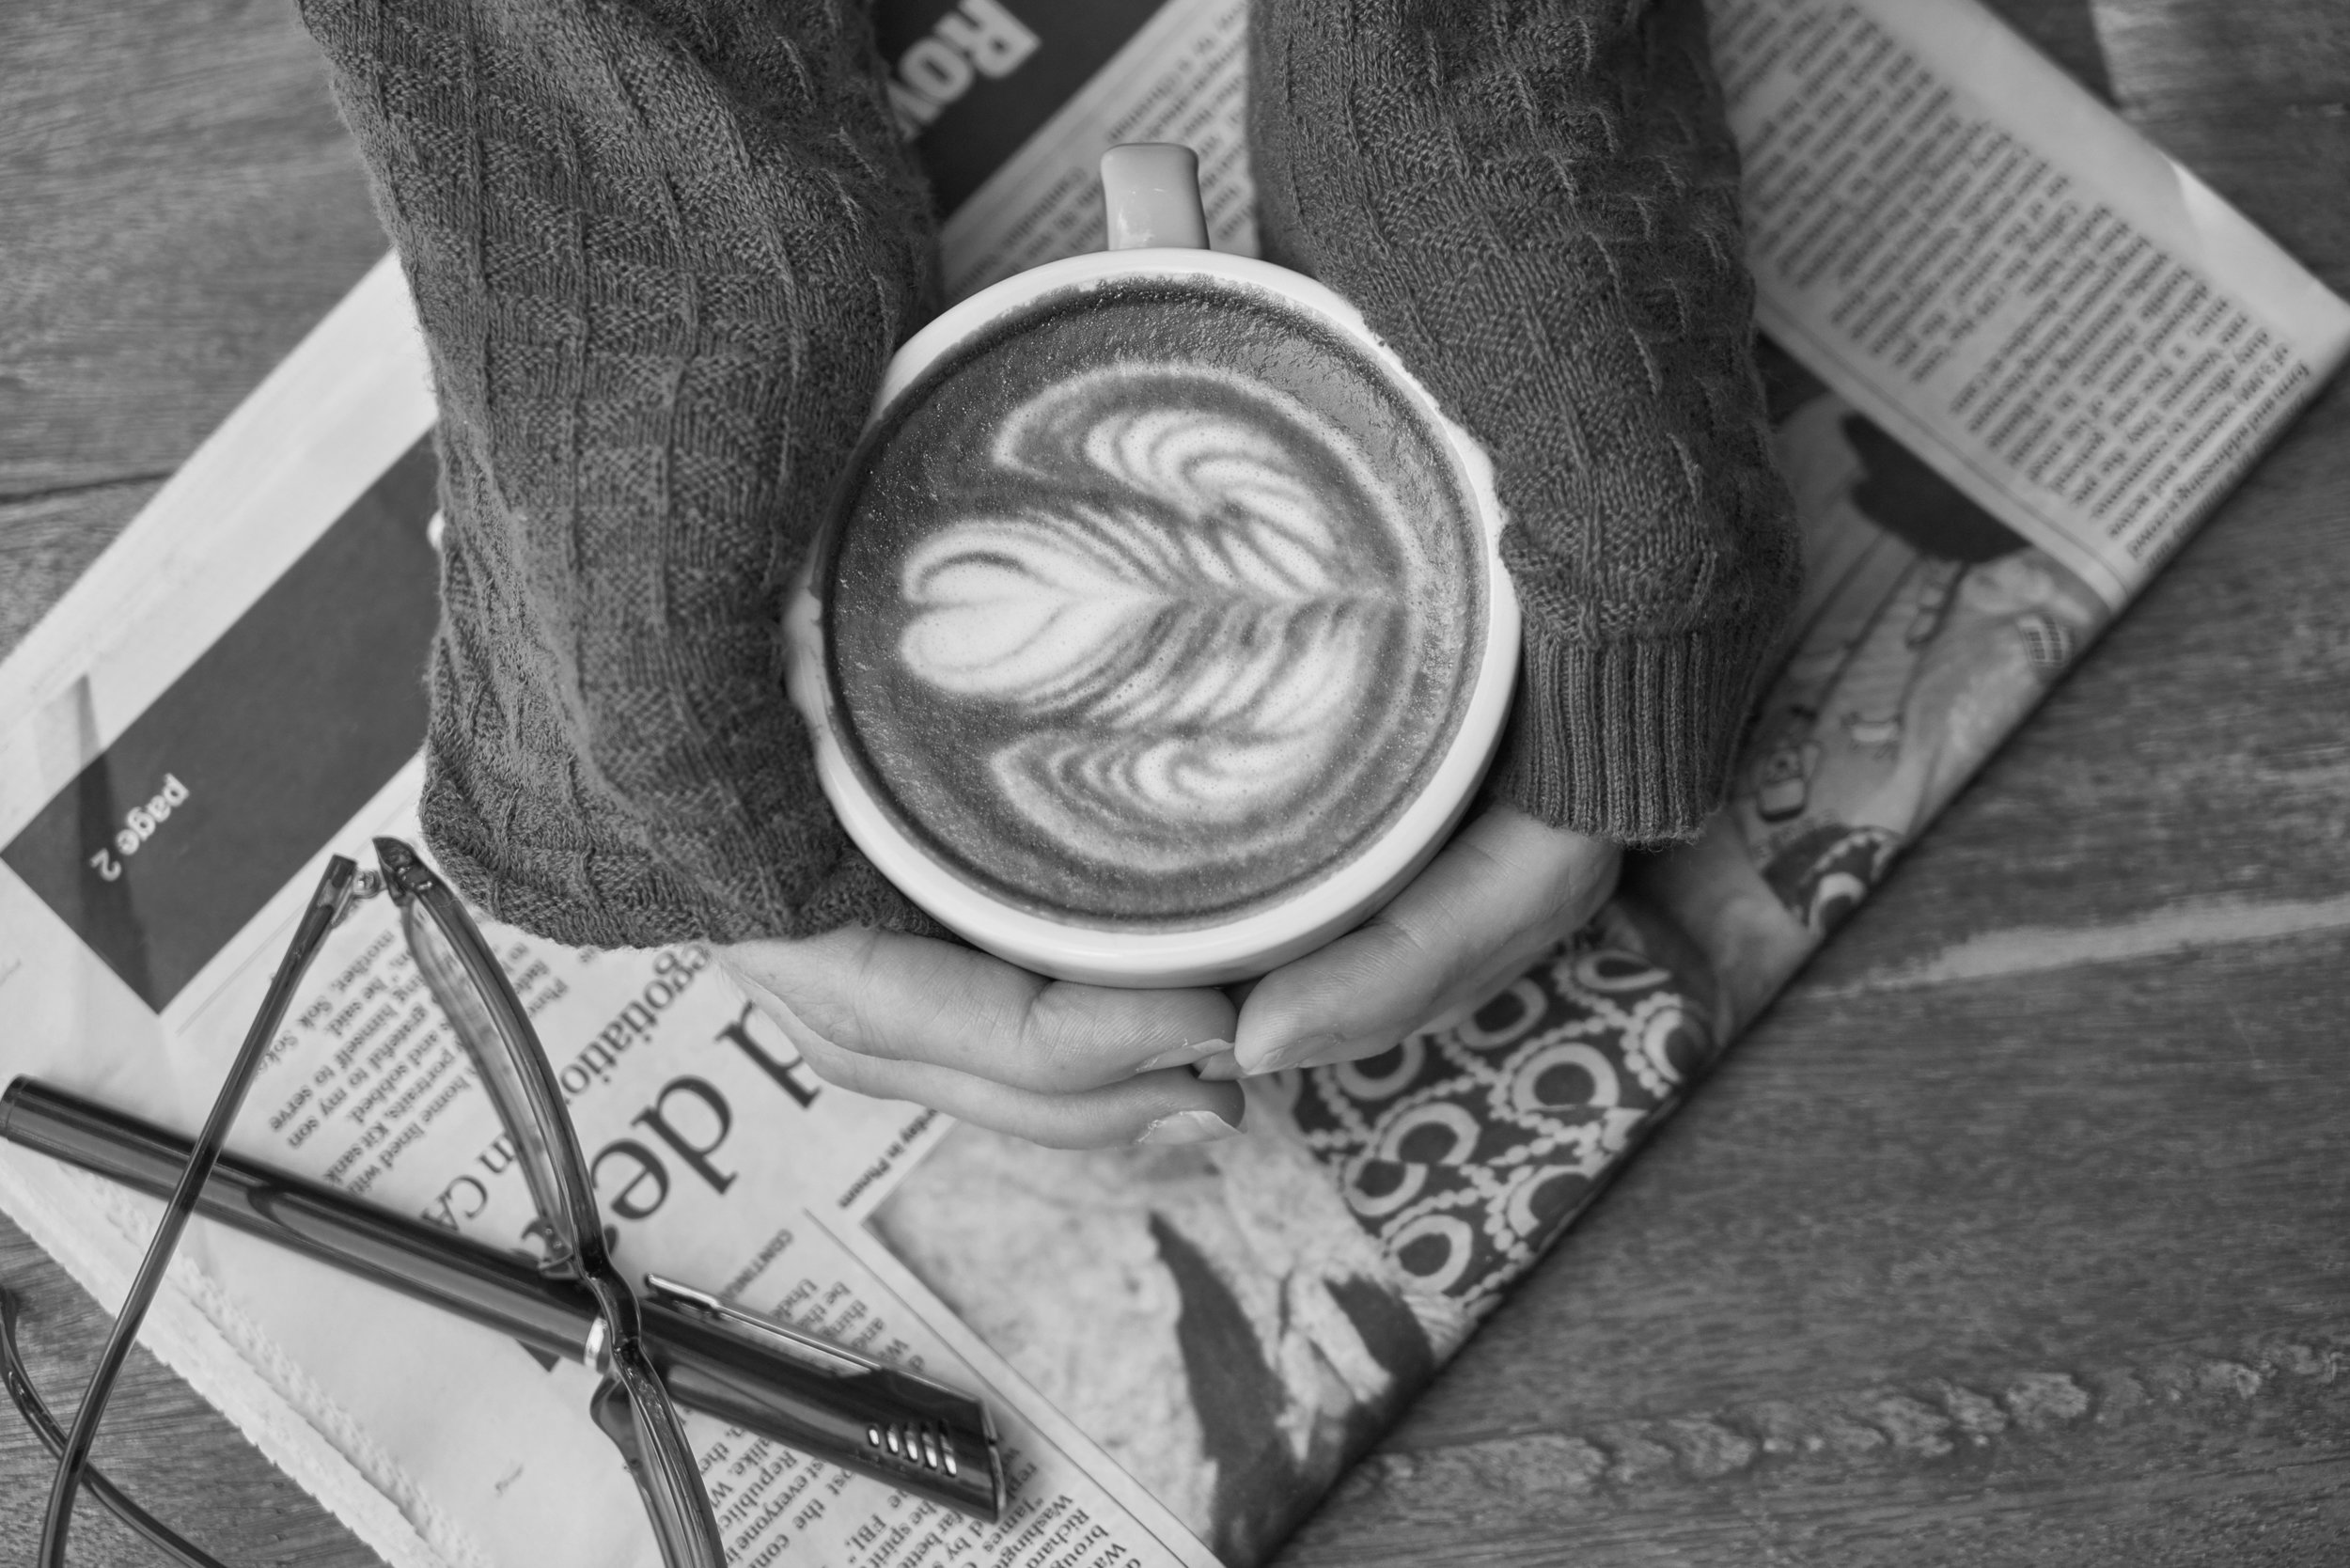 Two hands cradle a latte on top of a newspaper